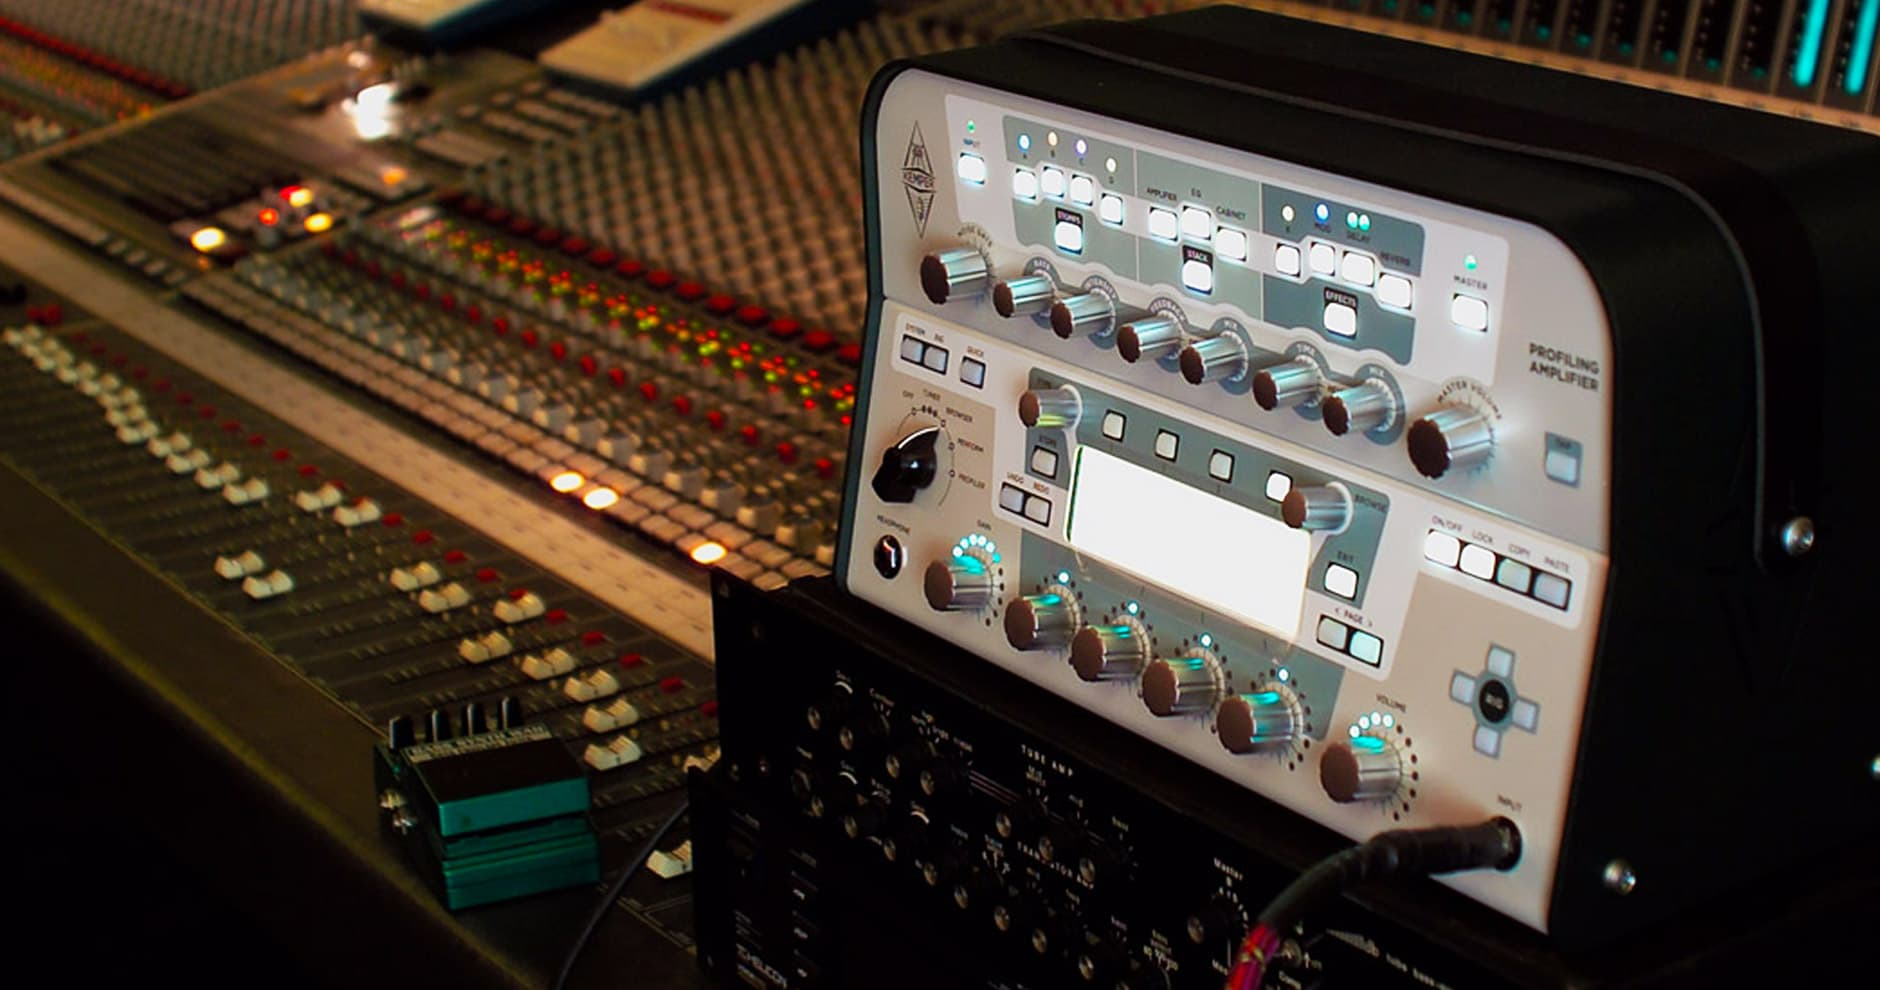 Is A Kemper Better For Home Recording Than A Real Amp? - Andertons Blog